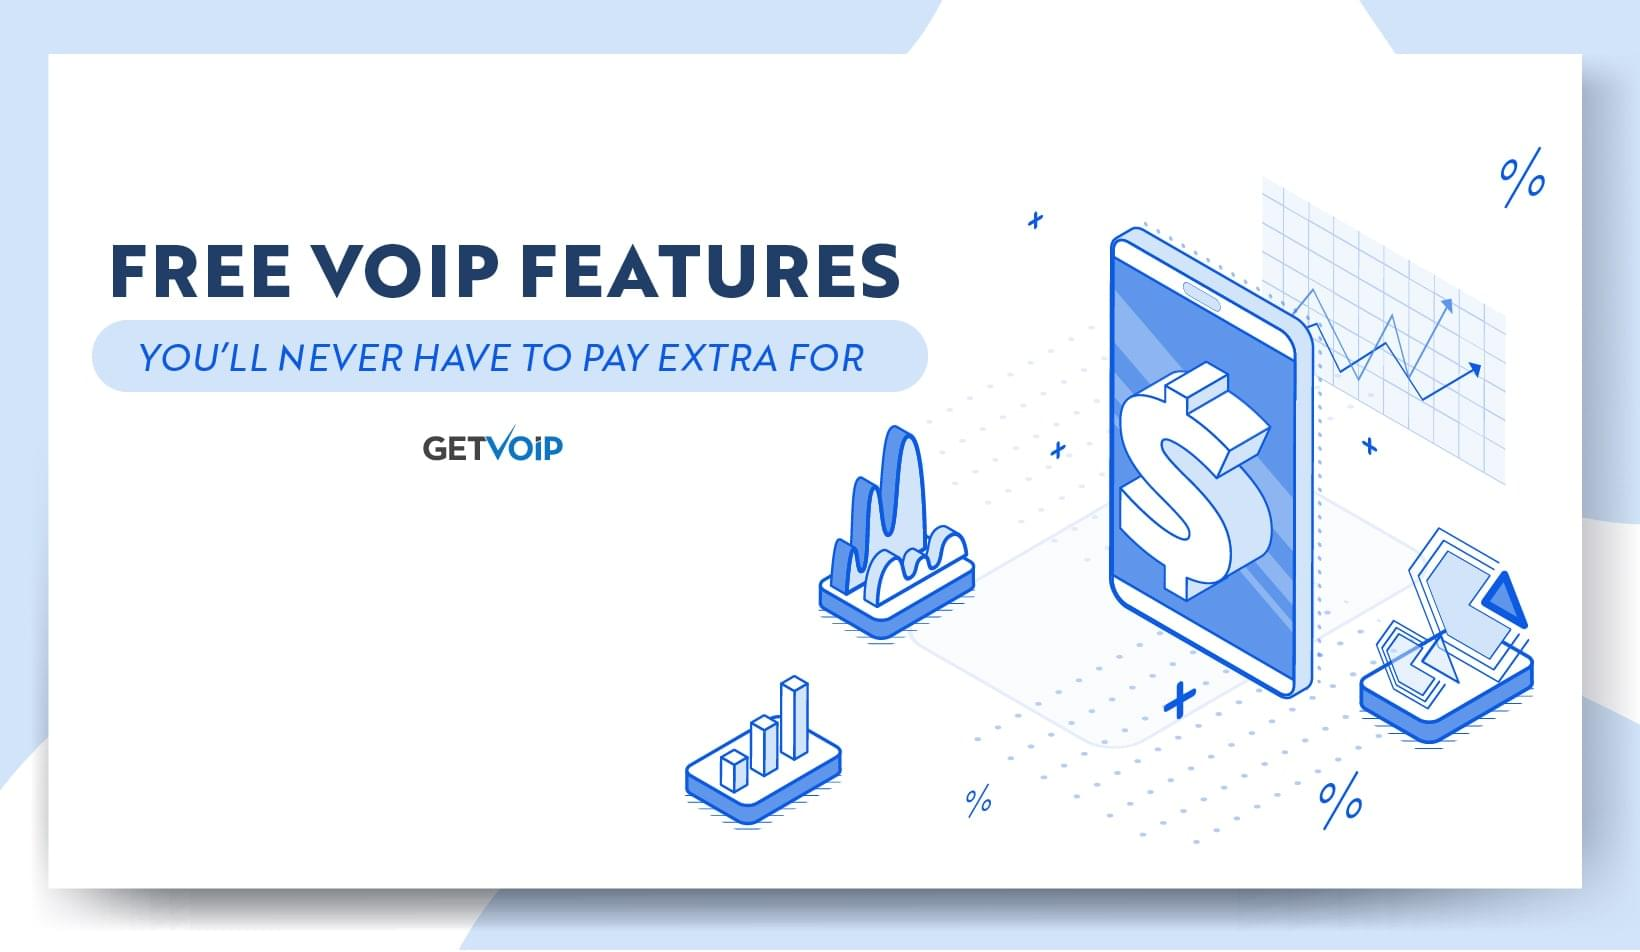 Free VoIP Features You'll Never Have to Pay Extra For